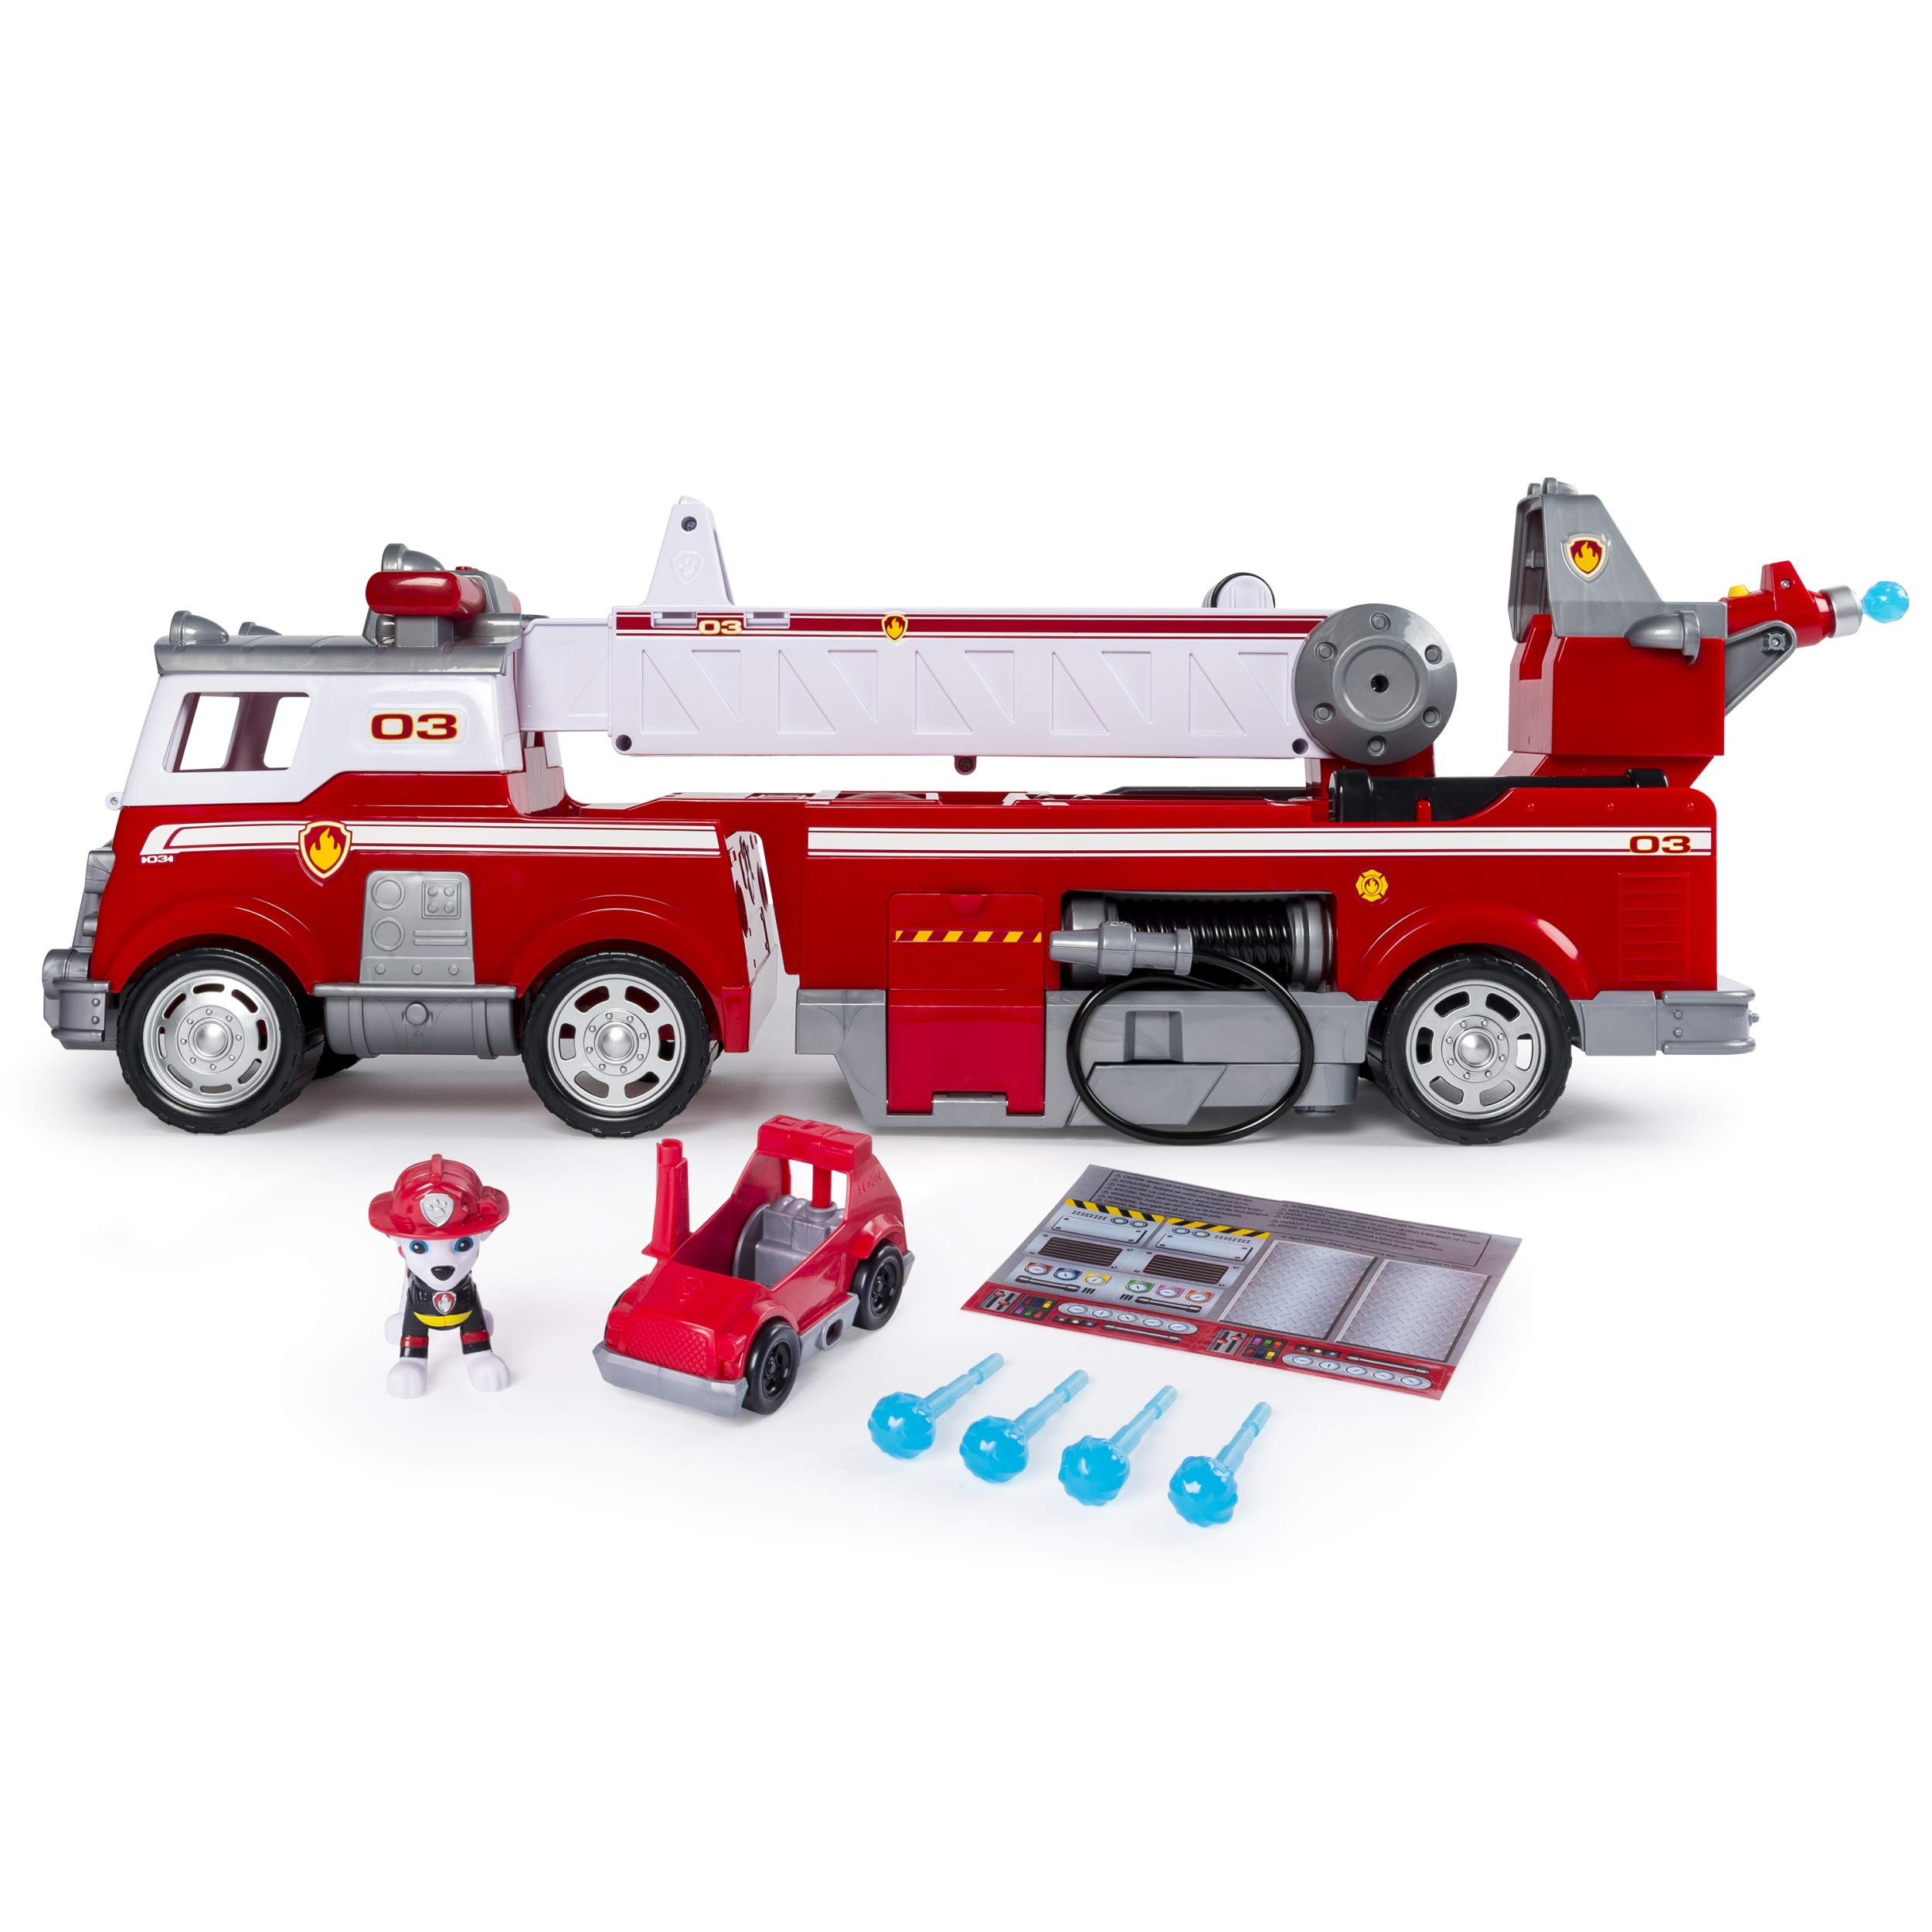 PAW Patrol - Ultimate Rescue Fire Truck with Extendable 2 ft. Tall Ladder, for Ages 3 and Up by Paw Patrol (Image #1)